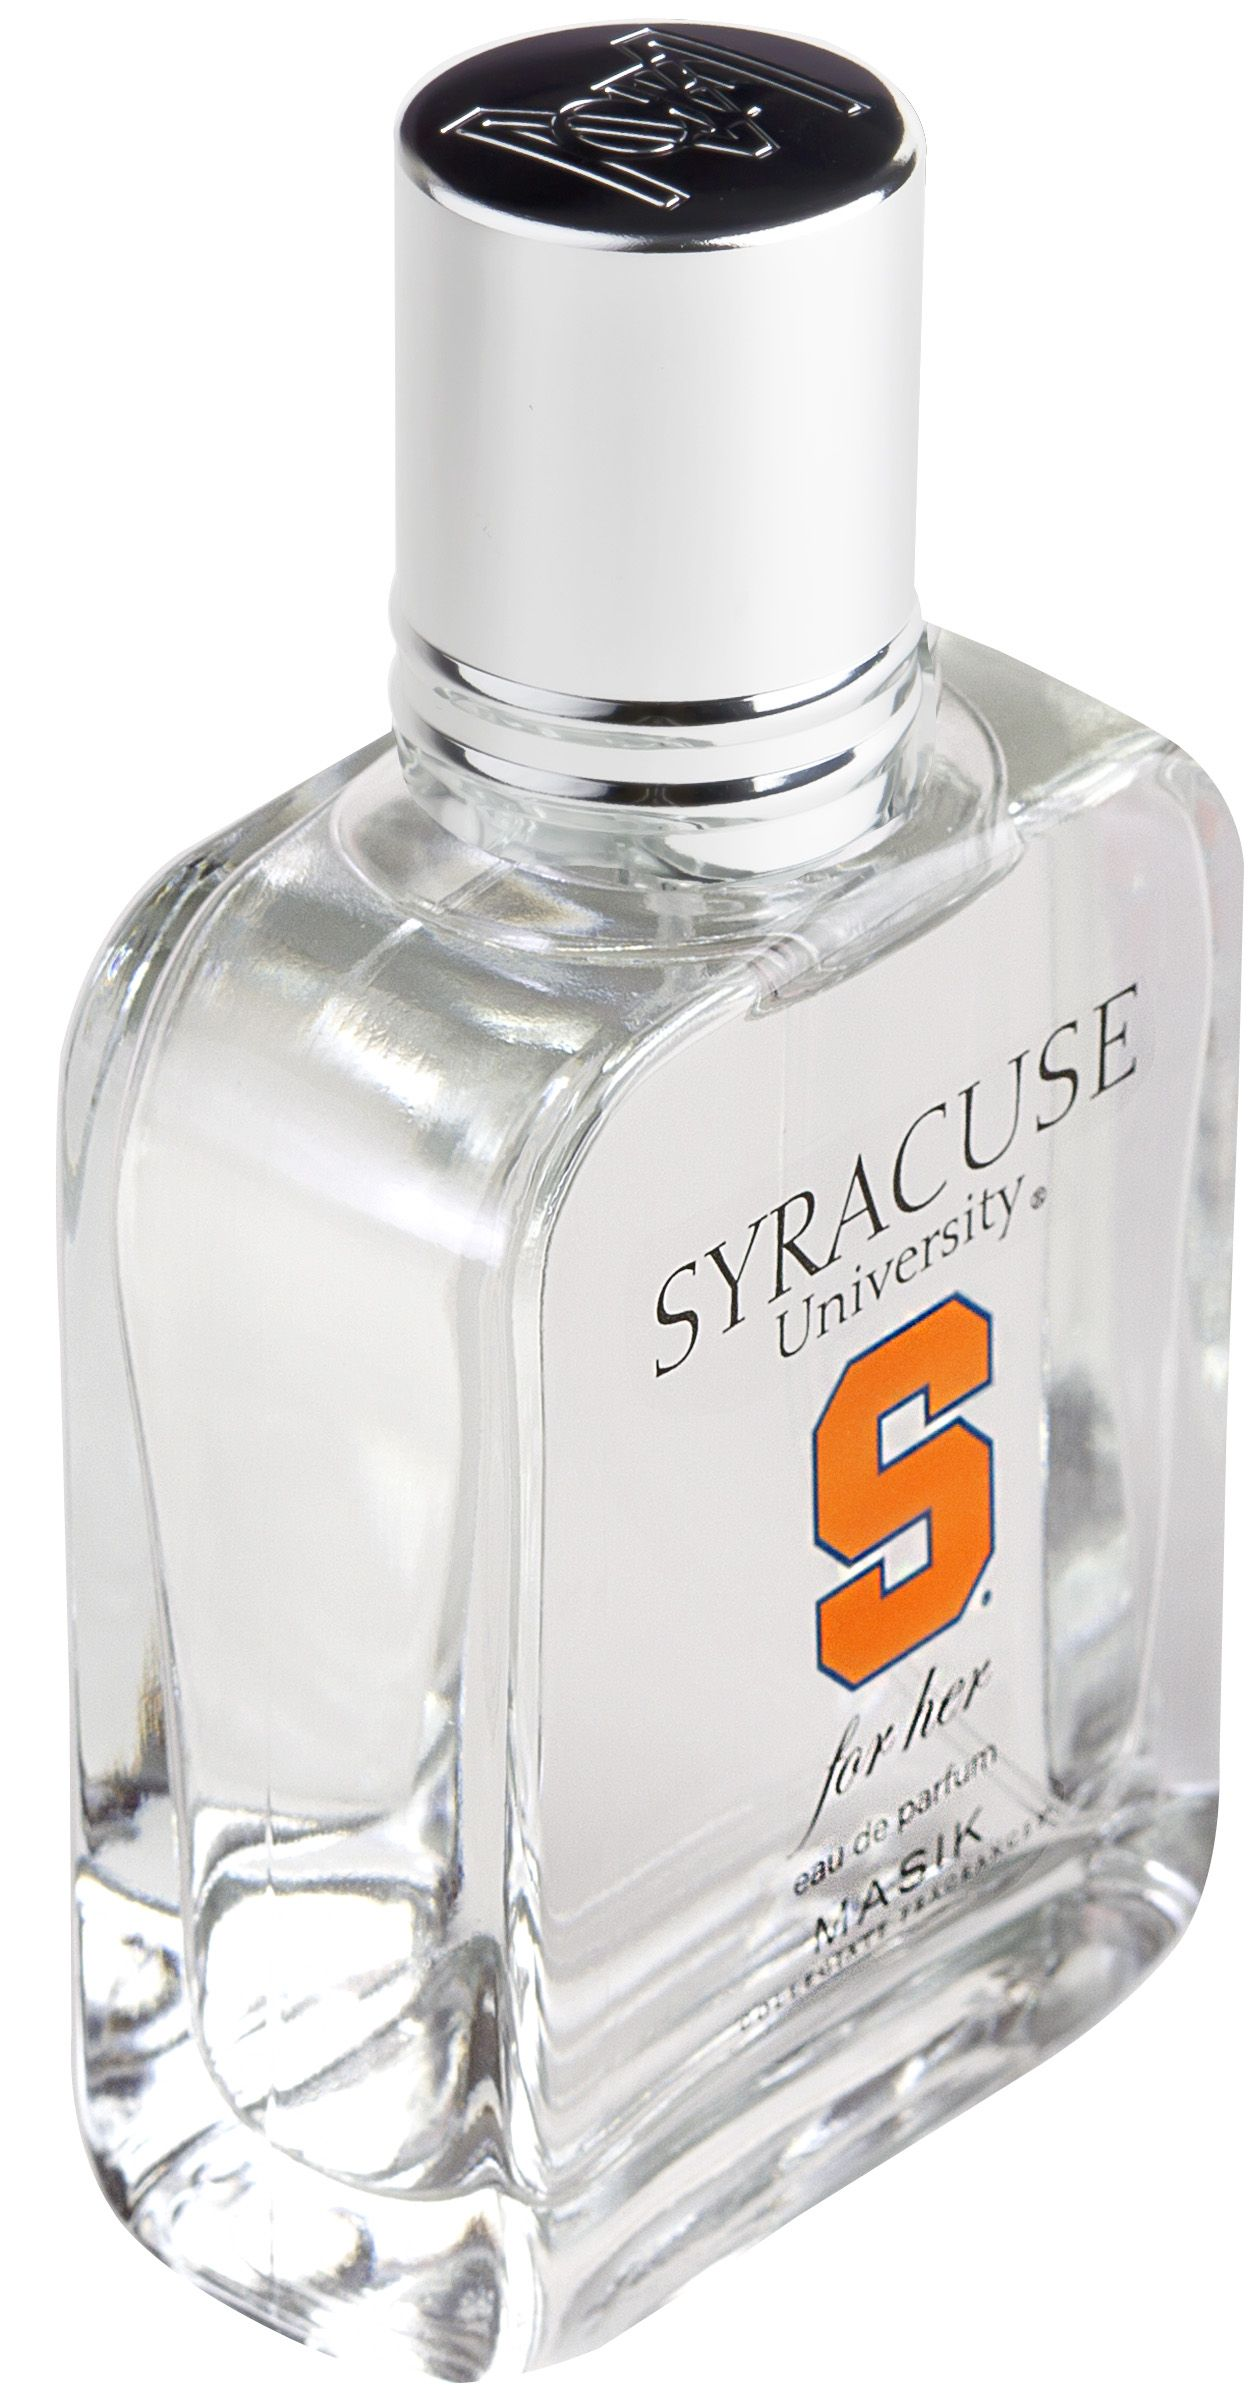 New Syracuse University fragrance for him and her! On sale